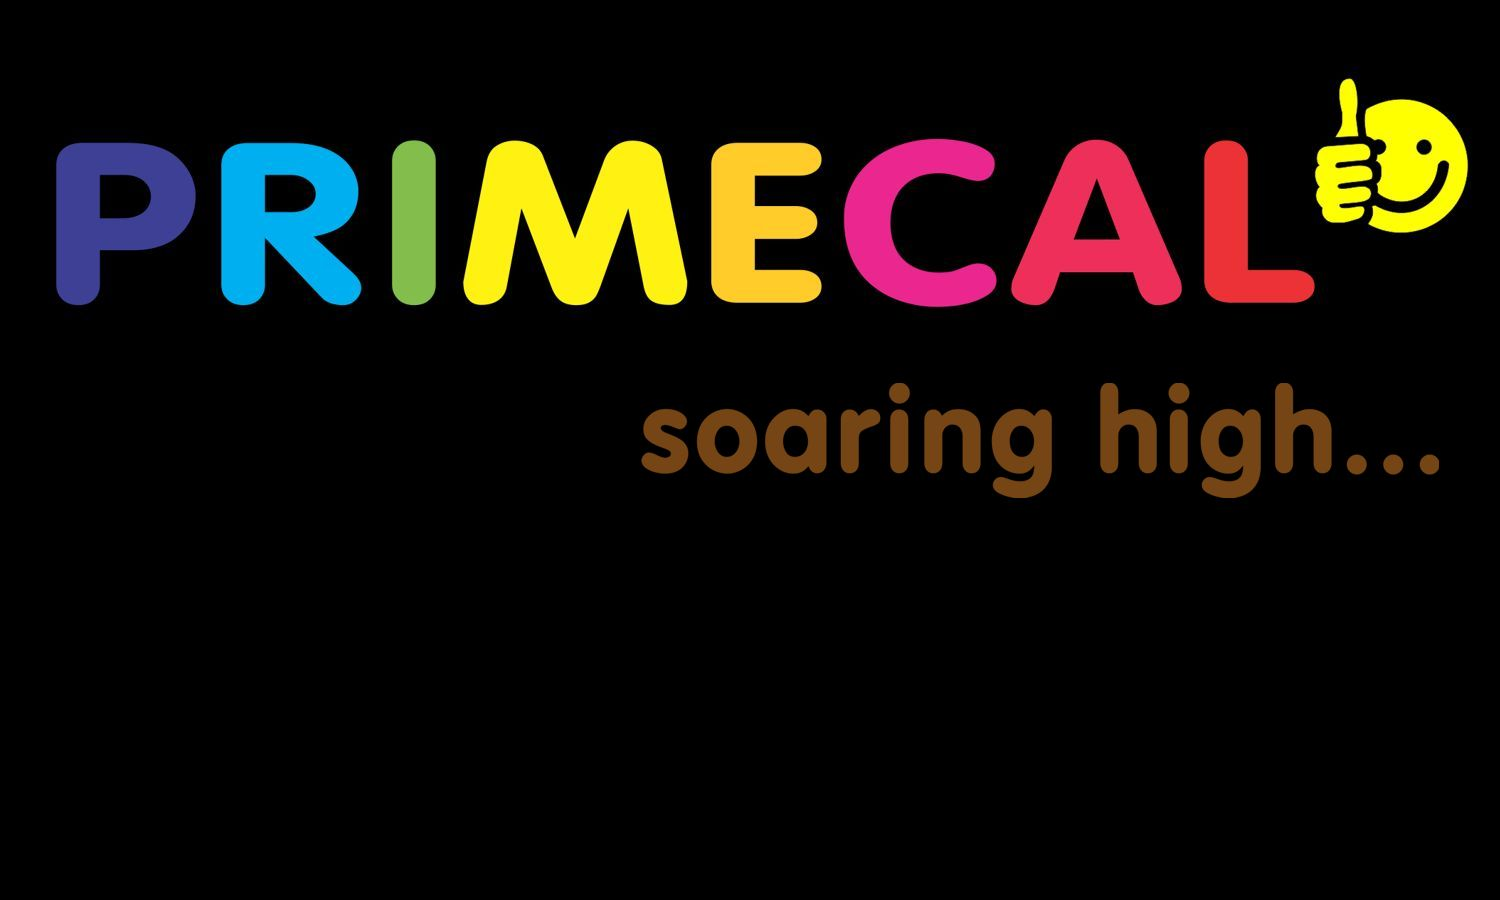 Primecal-black-soaring-high